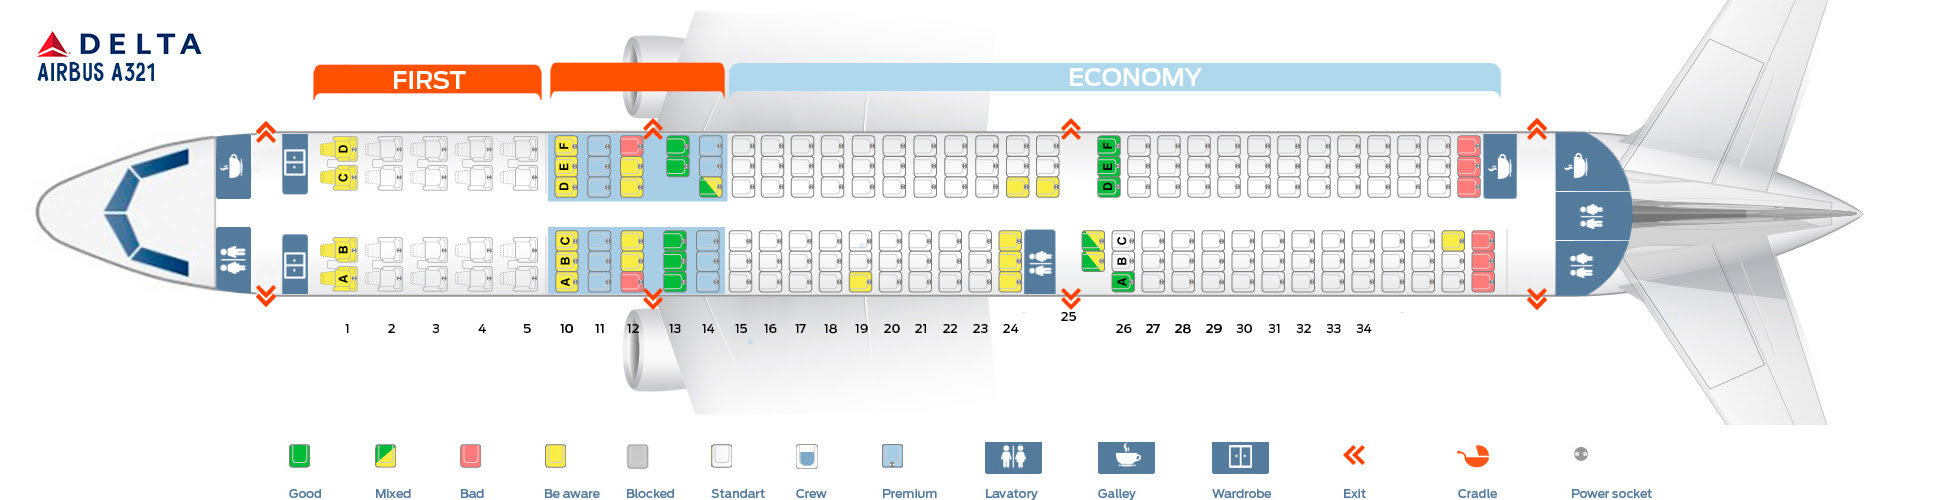 Airbus A321 Seating Chart Gallery Of